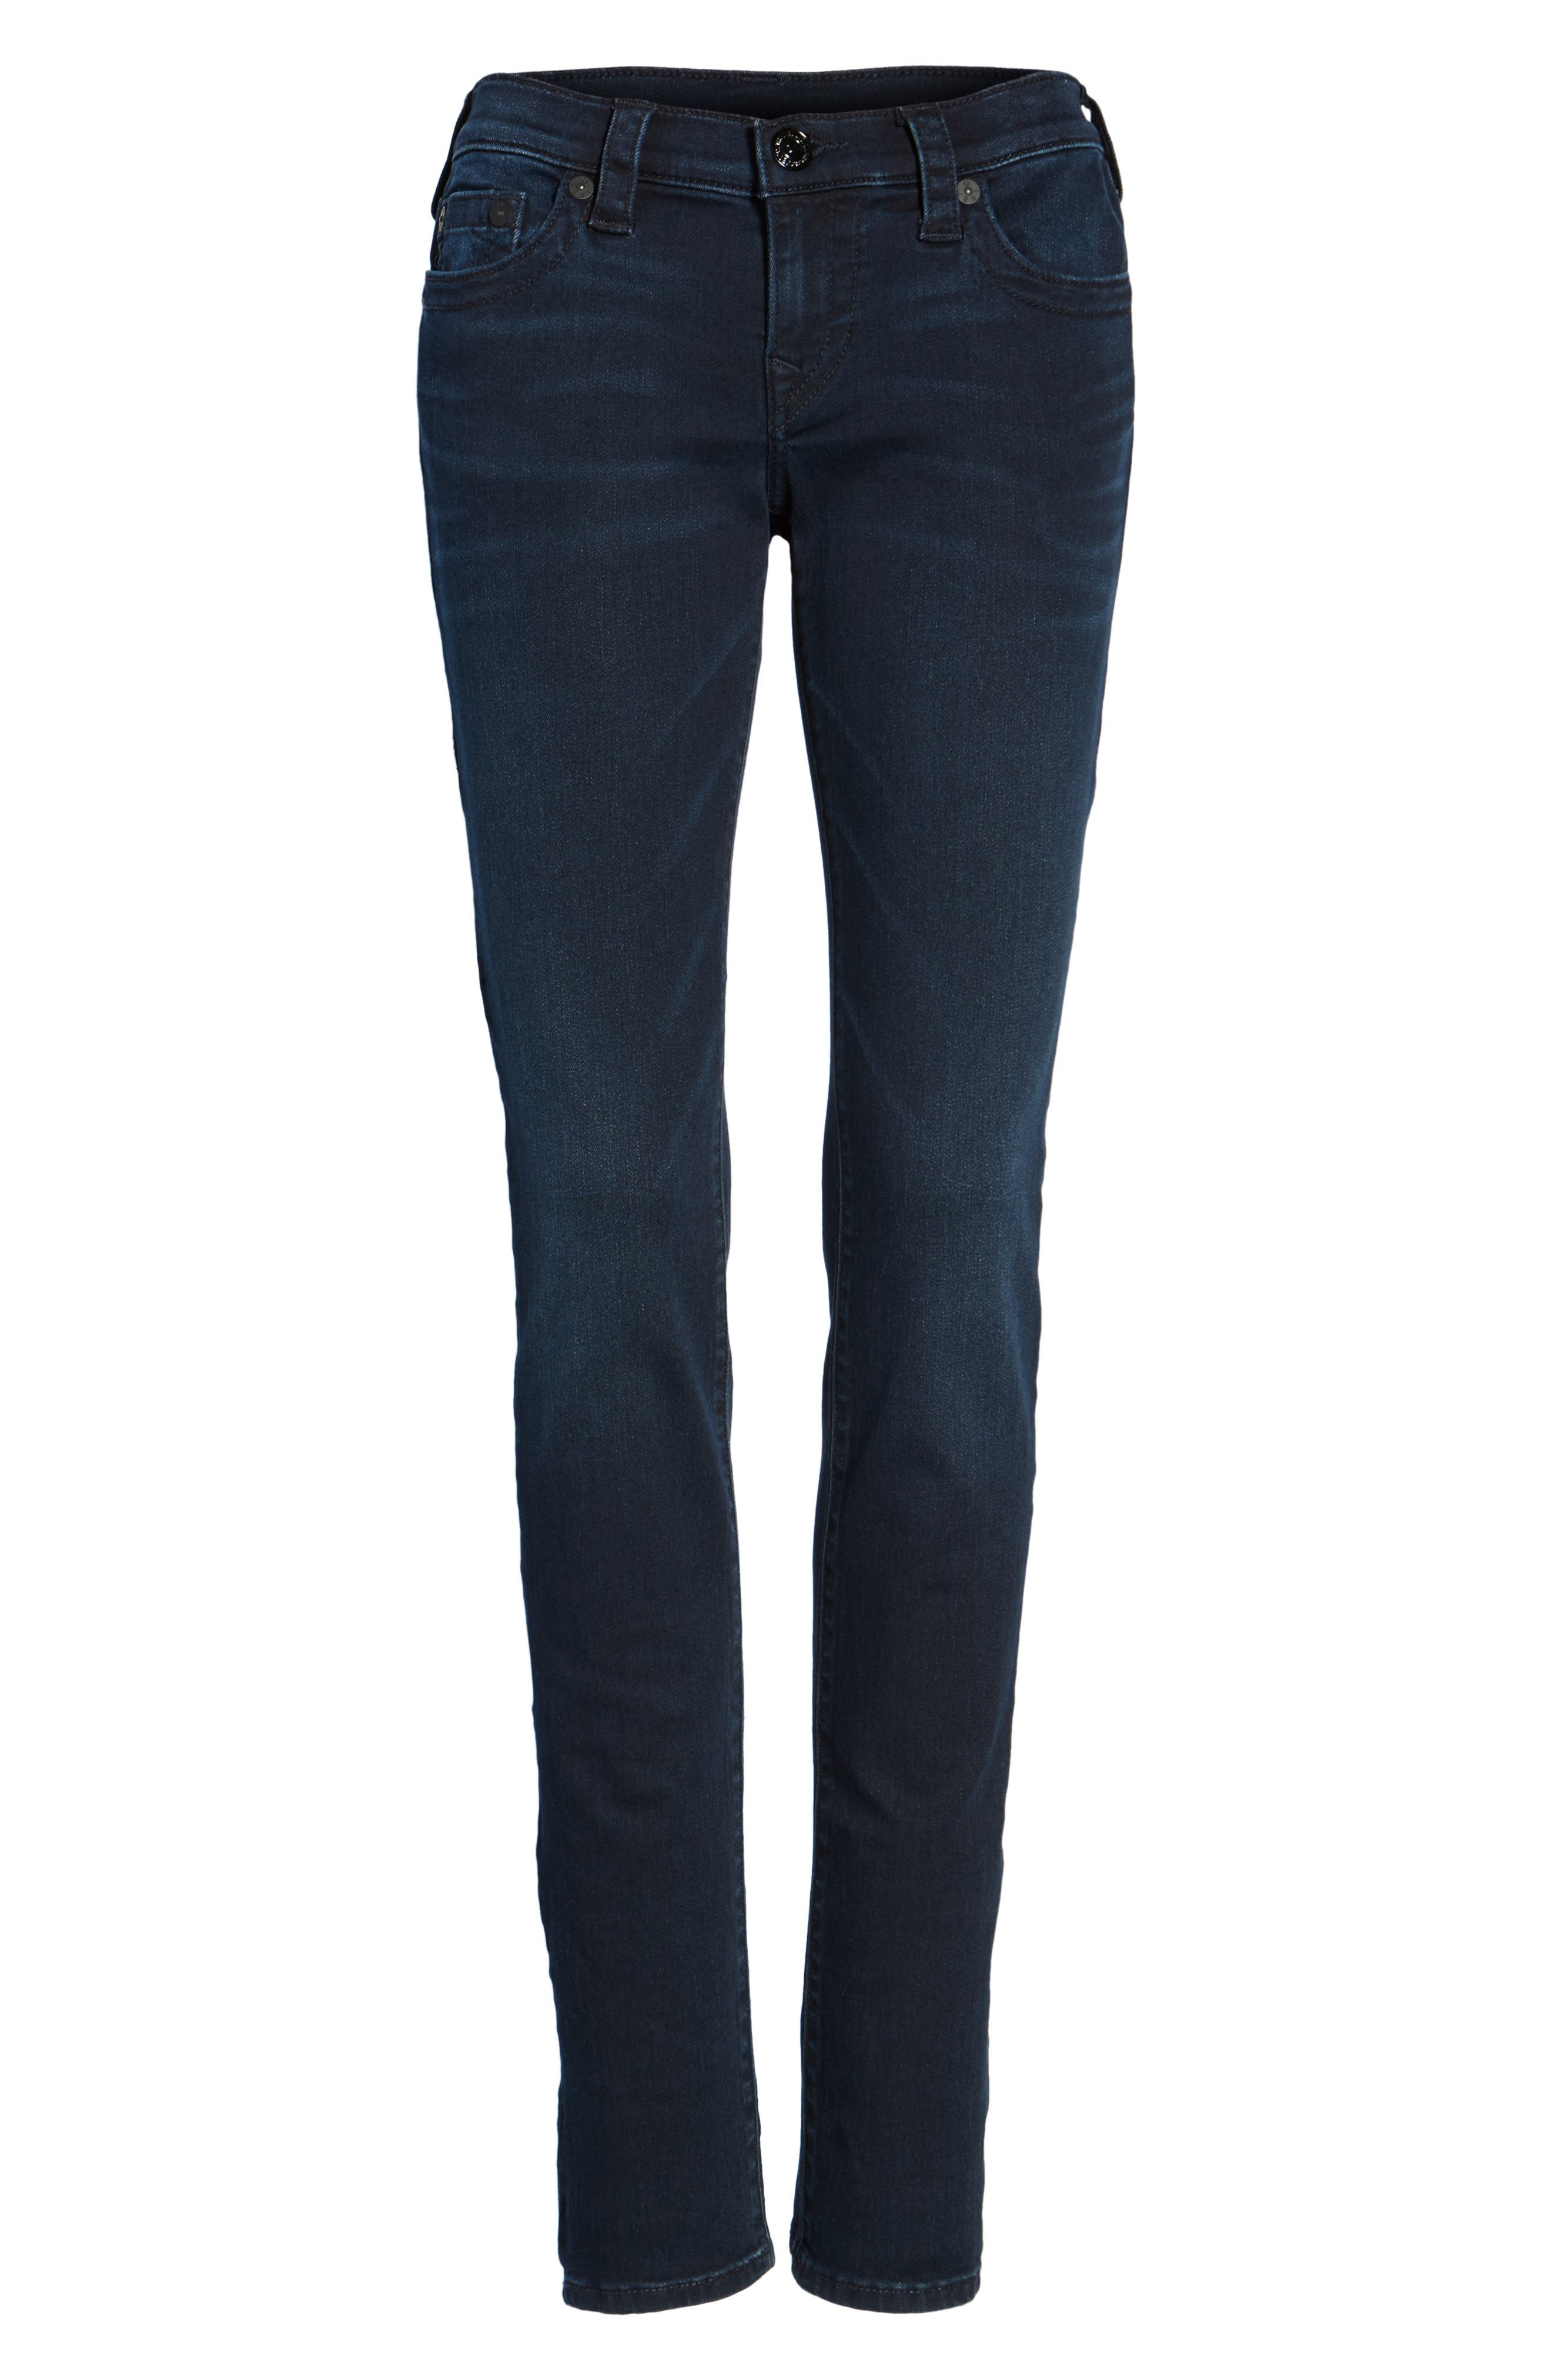 Stella Low Rise Skinny Jeans,                             Alternate thumbnail 6, color,                             400